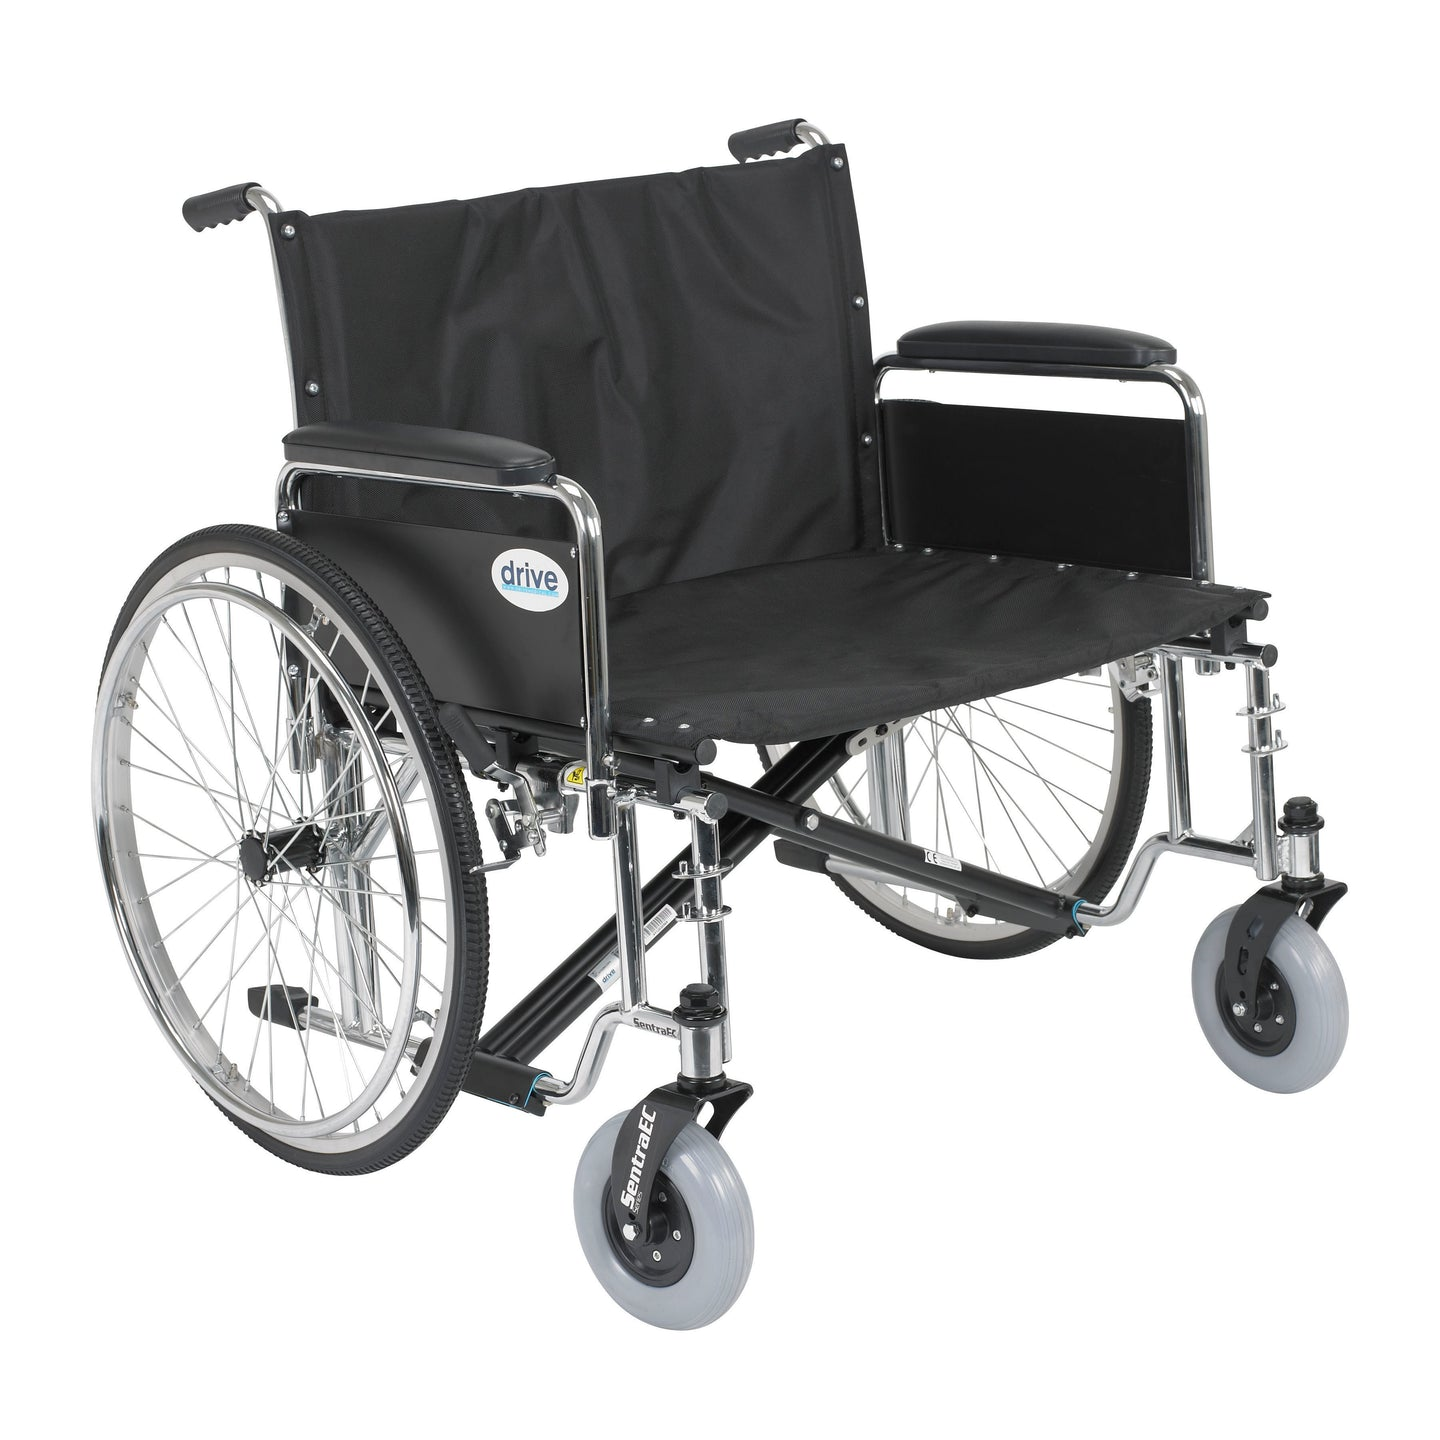 Drive Sentra EC Heavy Duty Extra Wide Wheelchair- Detachable Full Arms- 30